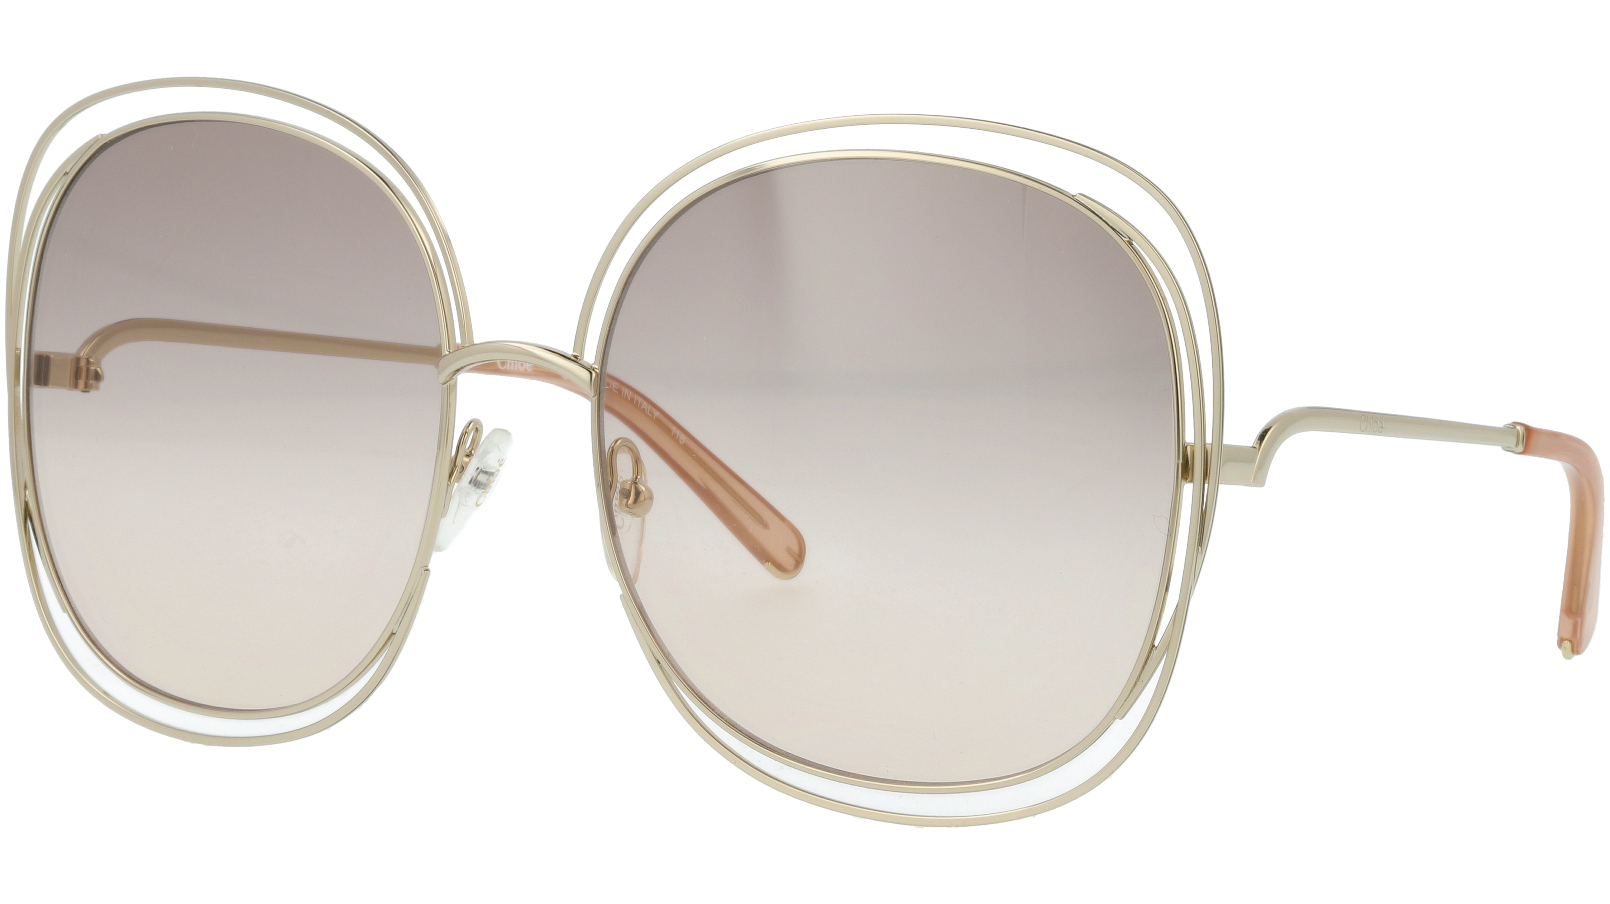 CHLOE CE126S 724 62 Gold/Transparent Peach Carlina Sunglasses